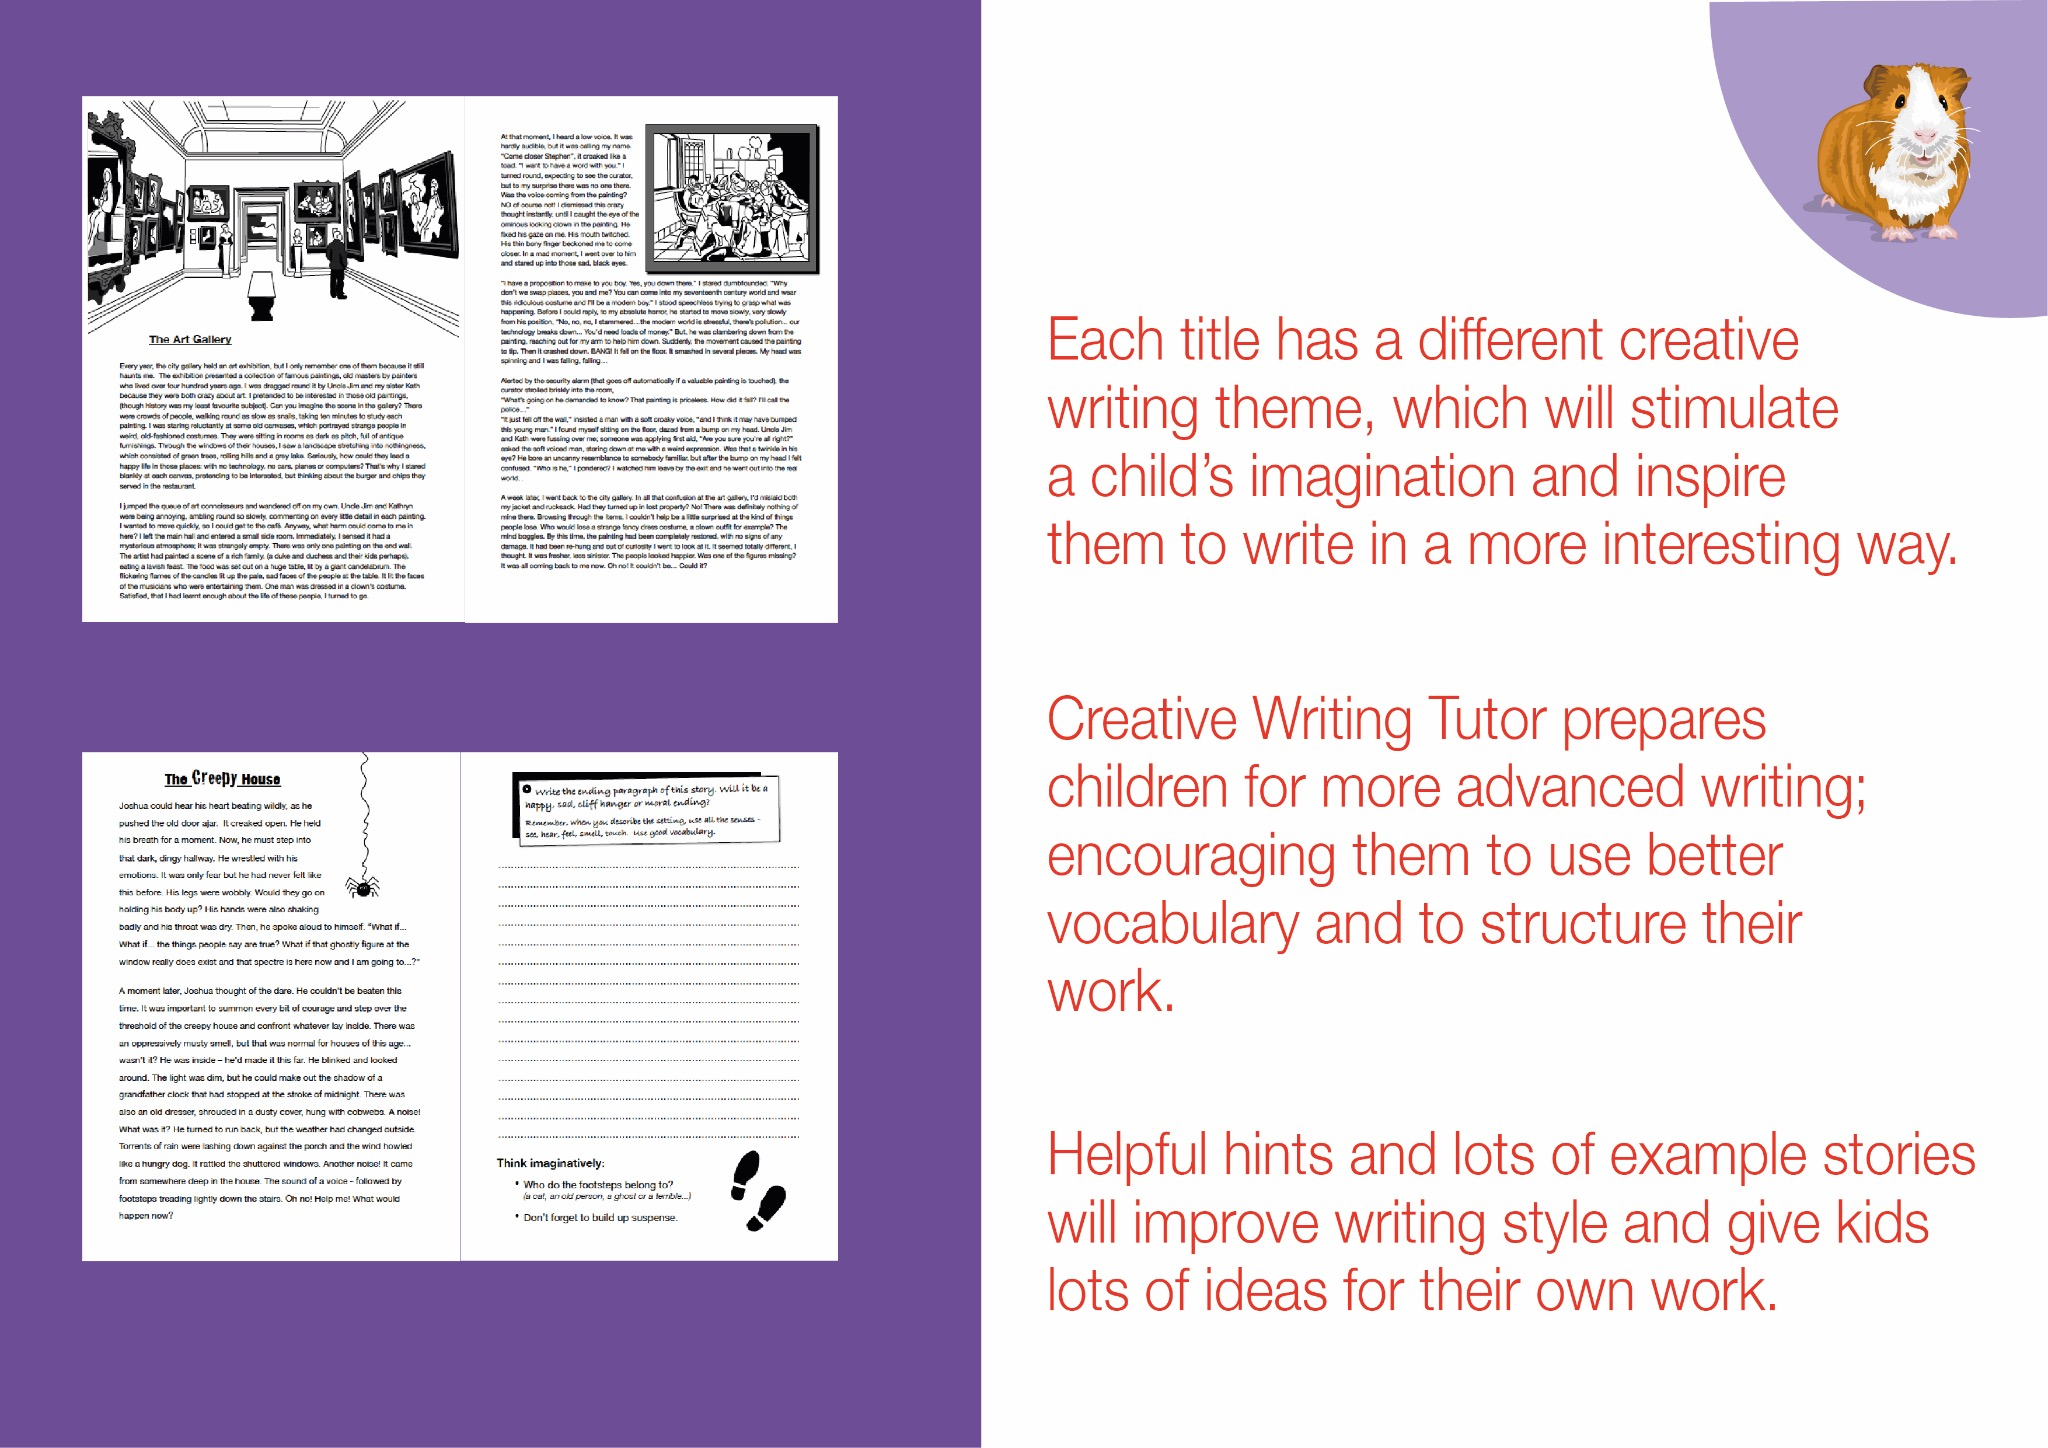 The Present: Brush Up On Your Writing Skills (Creative Writing Tutor) (ages 9-13 years)